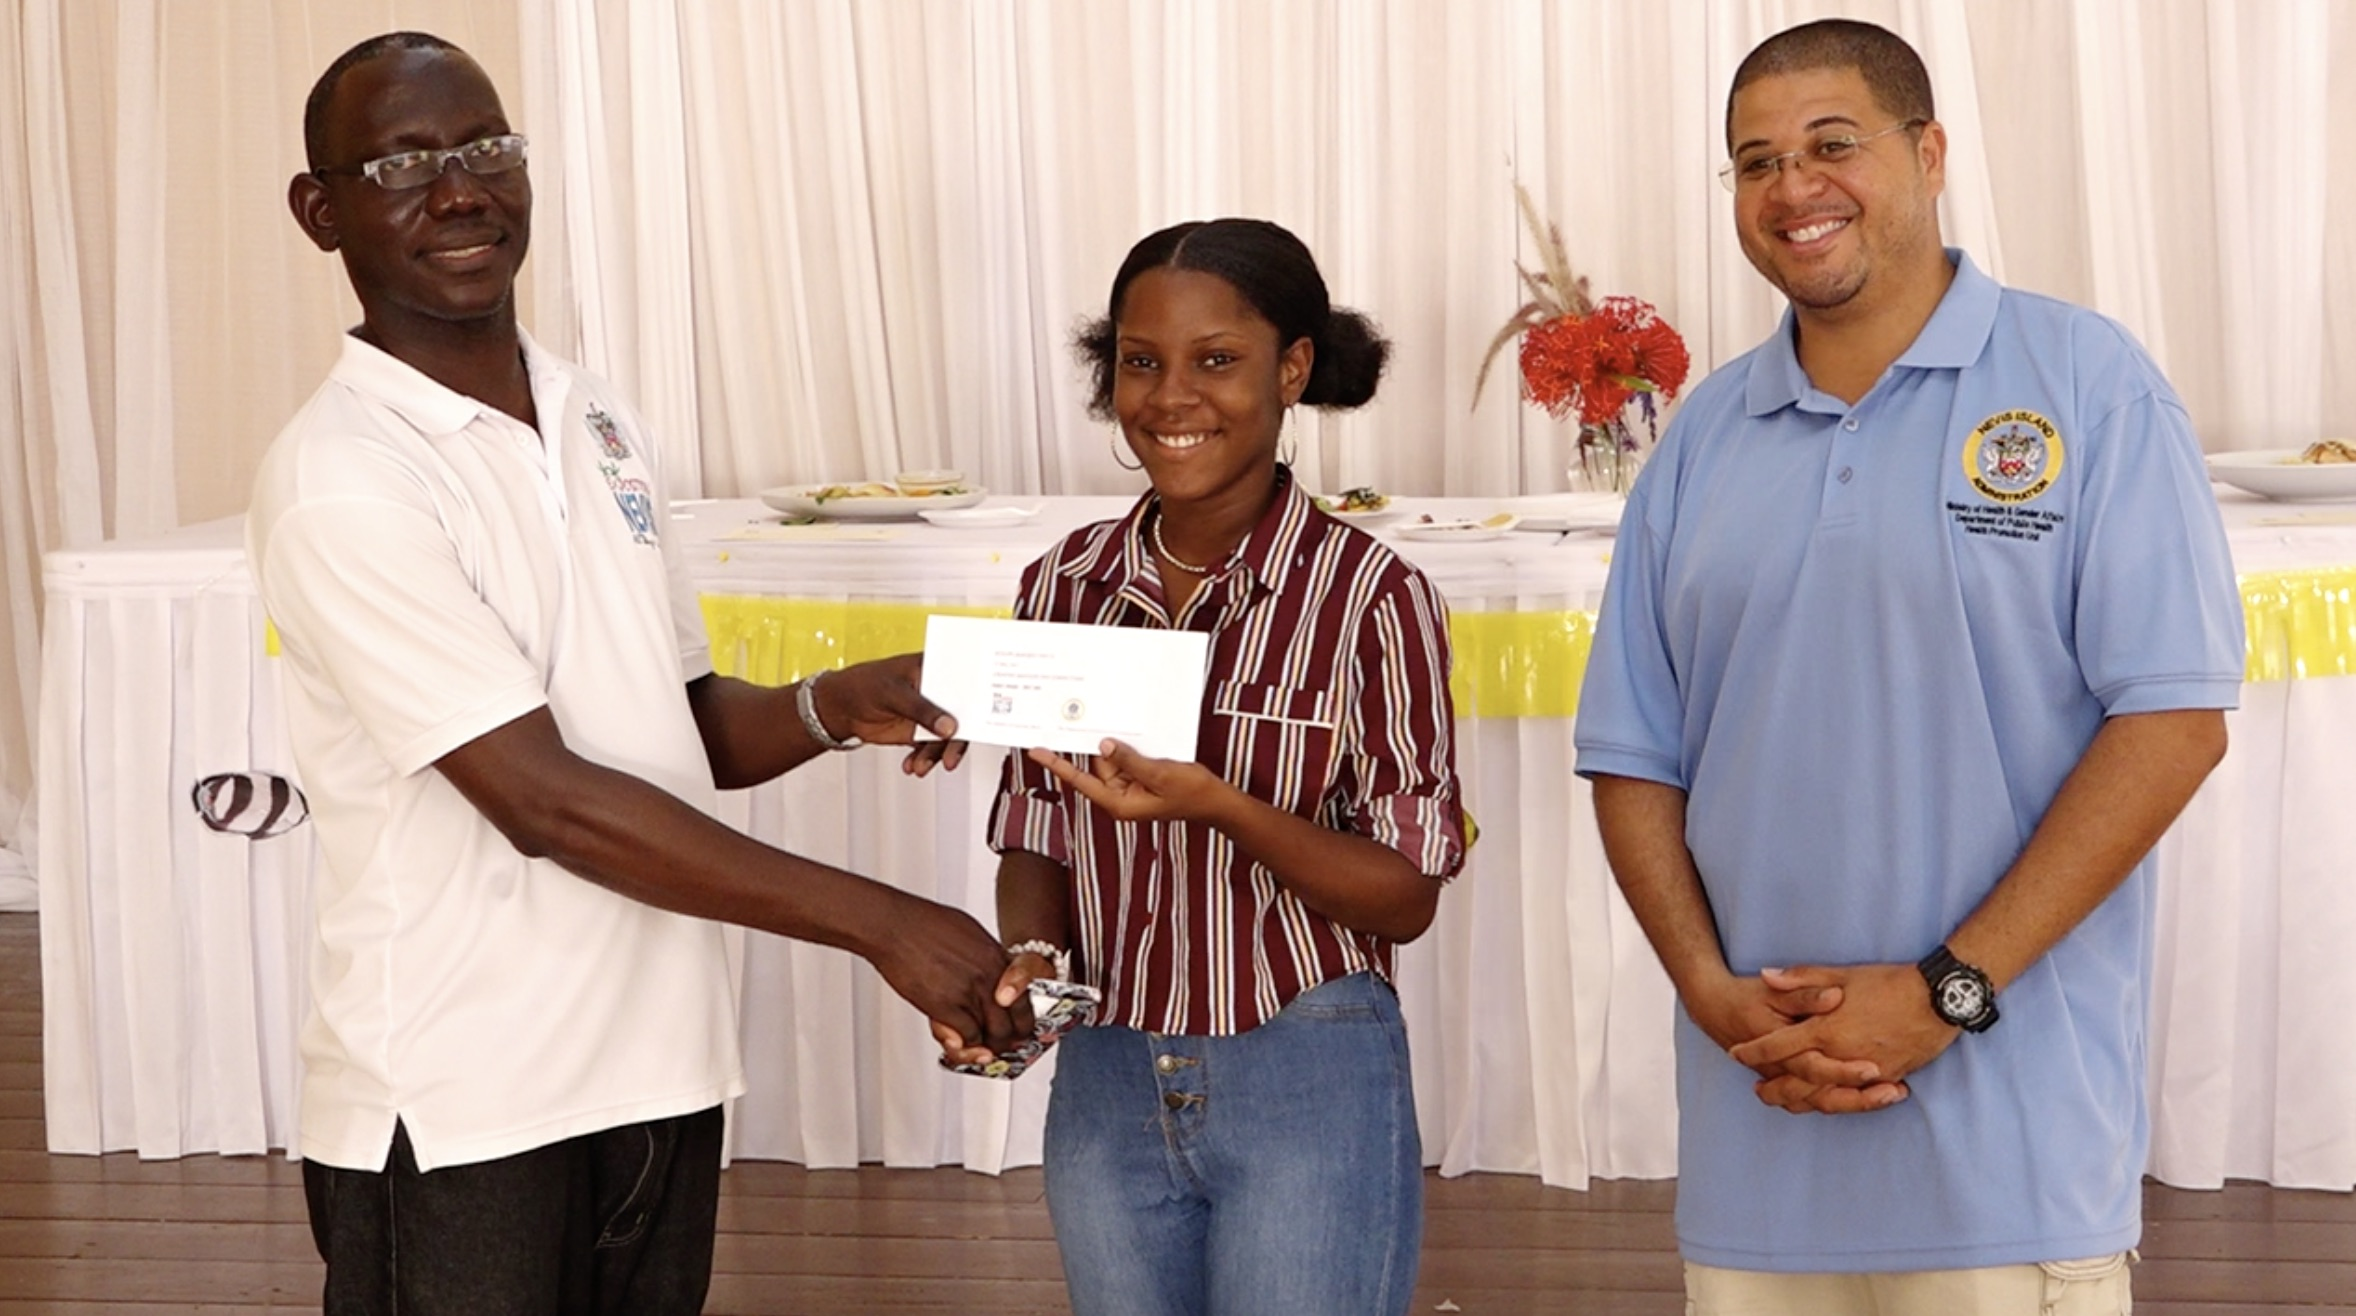 Mr. John Hanley, Permanent Secretary in the Ministry of Tourism, presents Ms. Jermella Browne, winner of the ministry's first Creative Seafood Dish Competition with her prize on May 03, 2021 while Executive Chef Michael Henville, a judge looks on